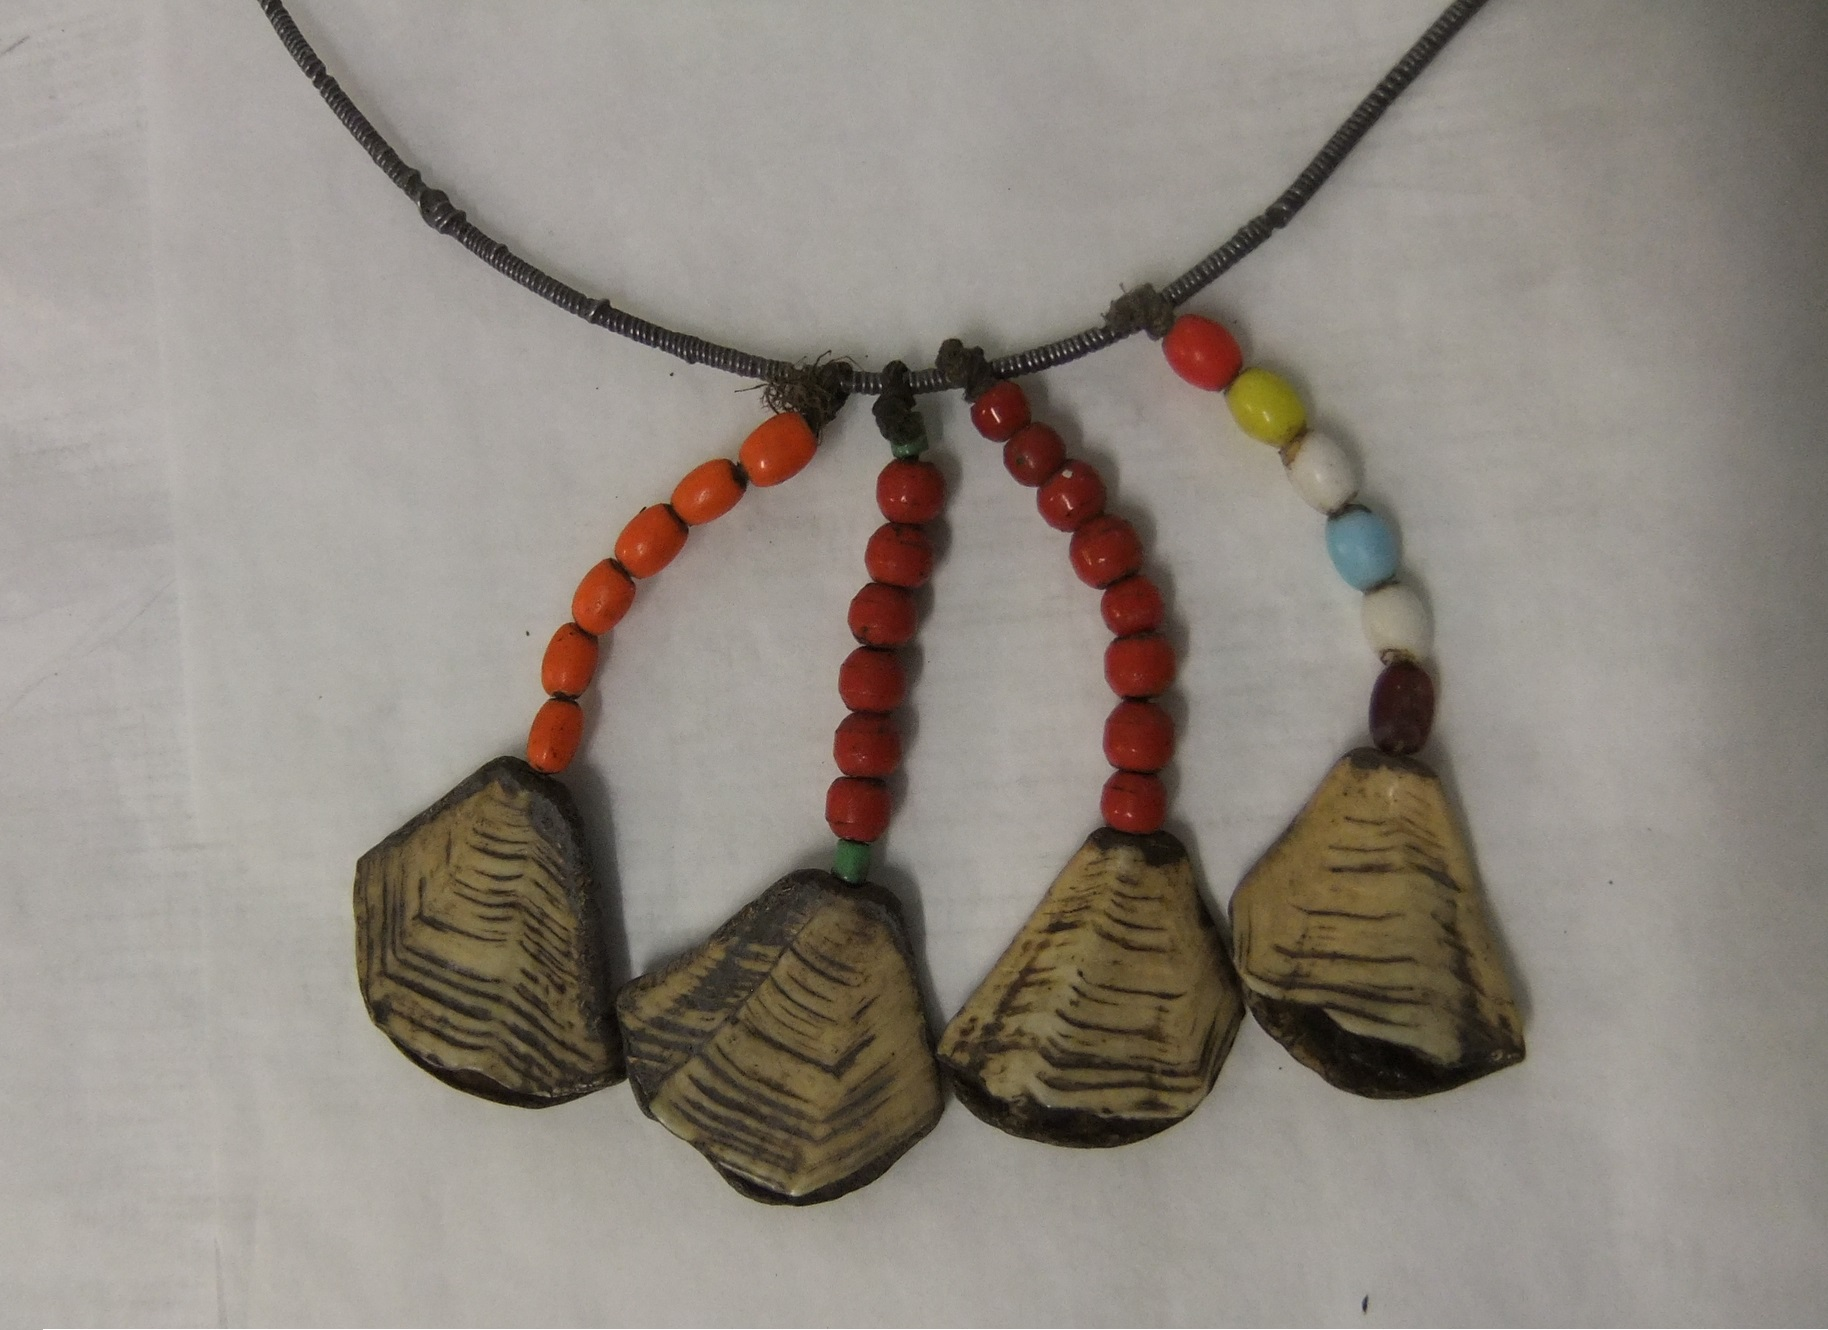 Detail of girl's necklace made from wire with four pendants of coloured beads terminating in pieces of tortoise shell